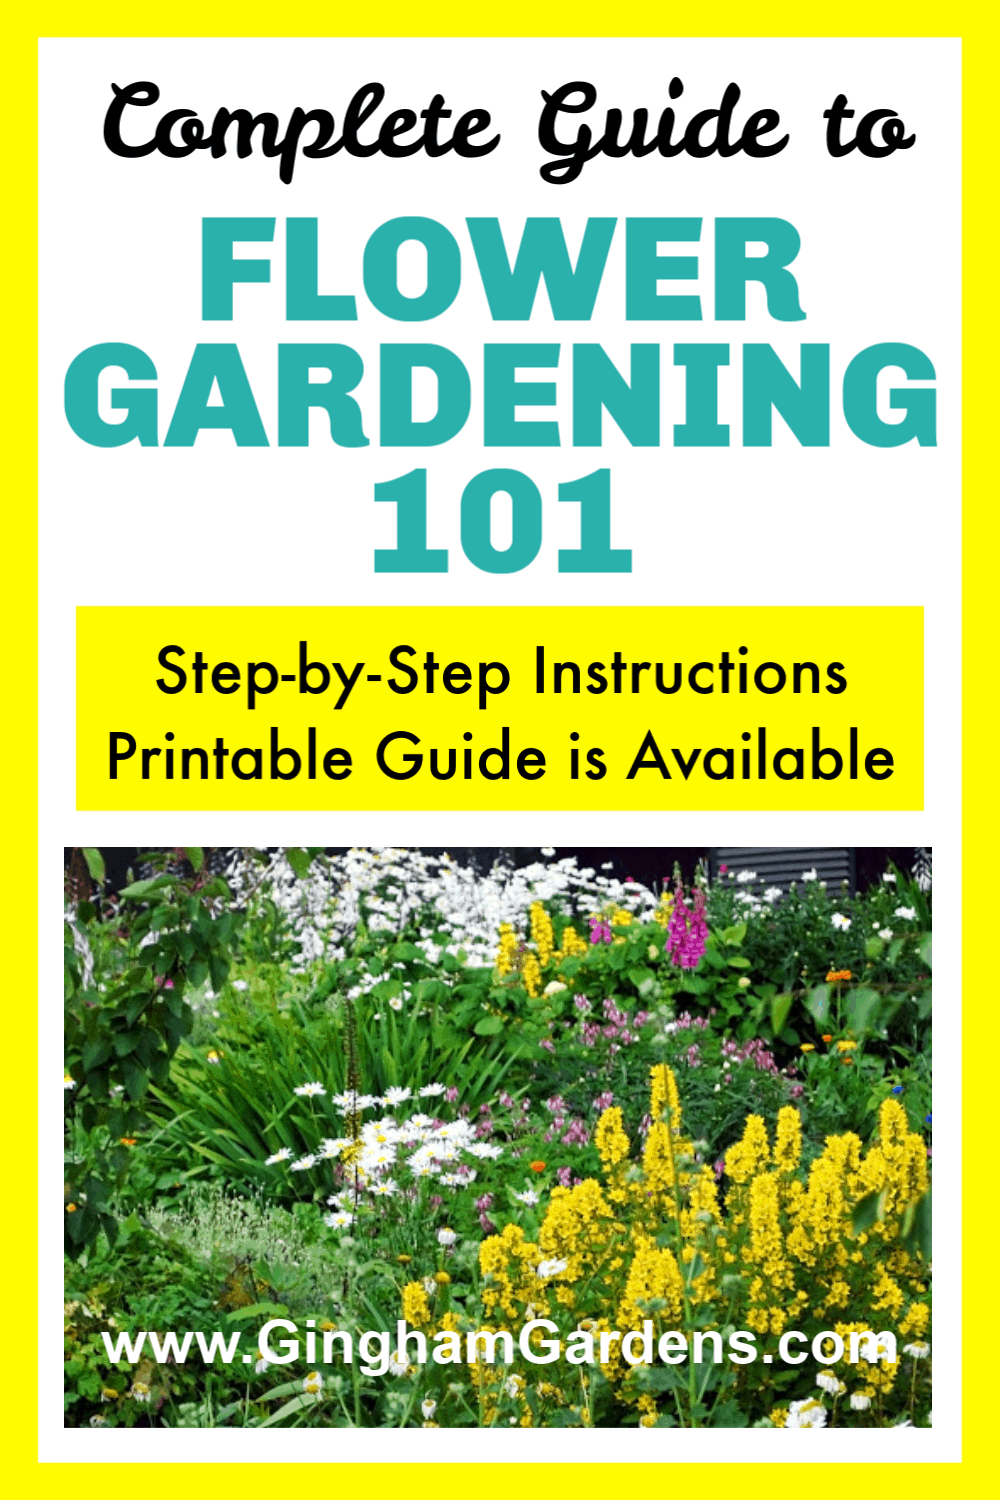 Flower Garden with Text Overlay - Flower Gardening 101